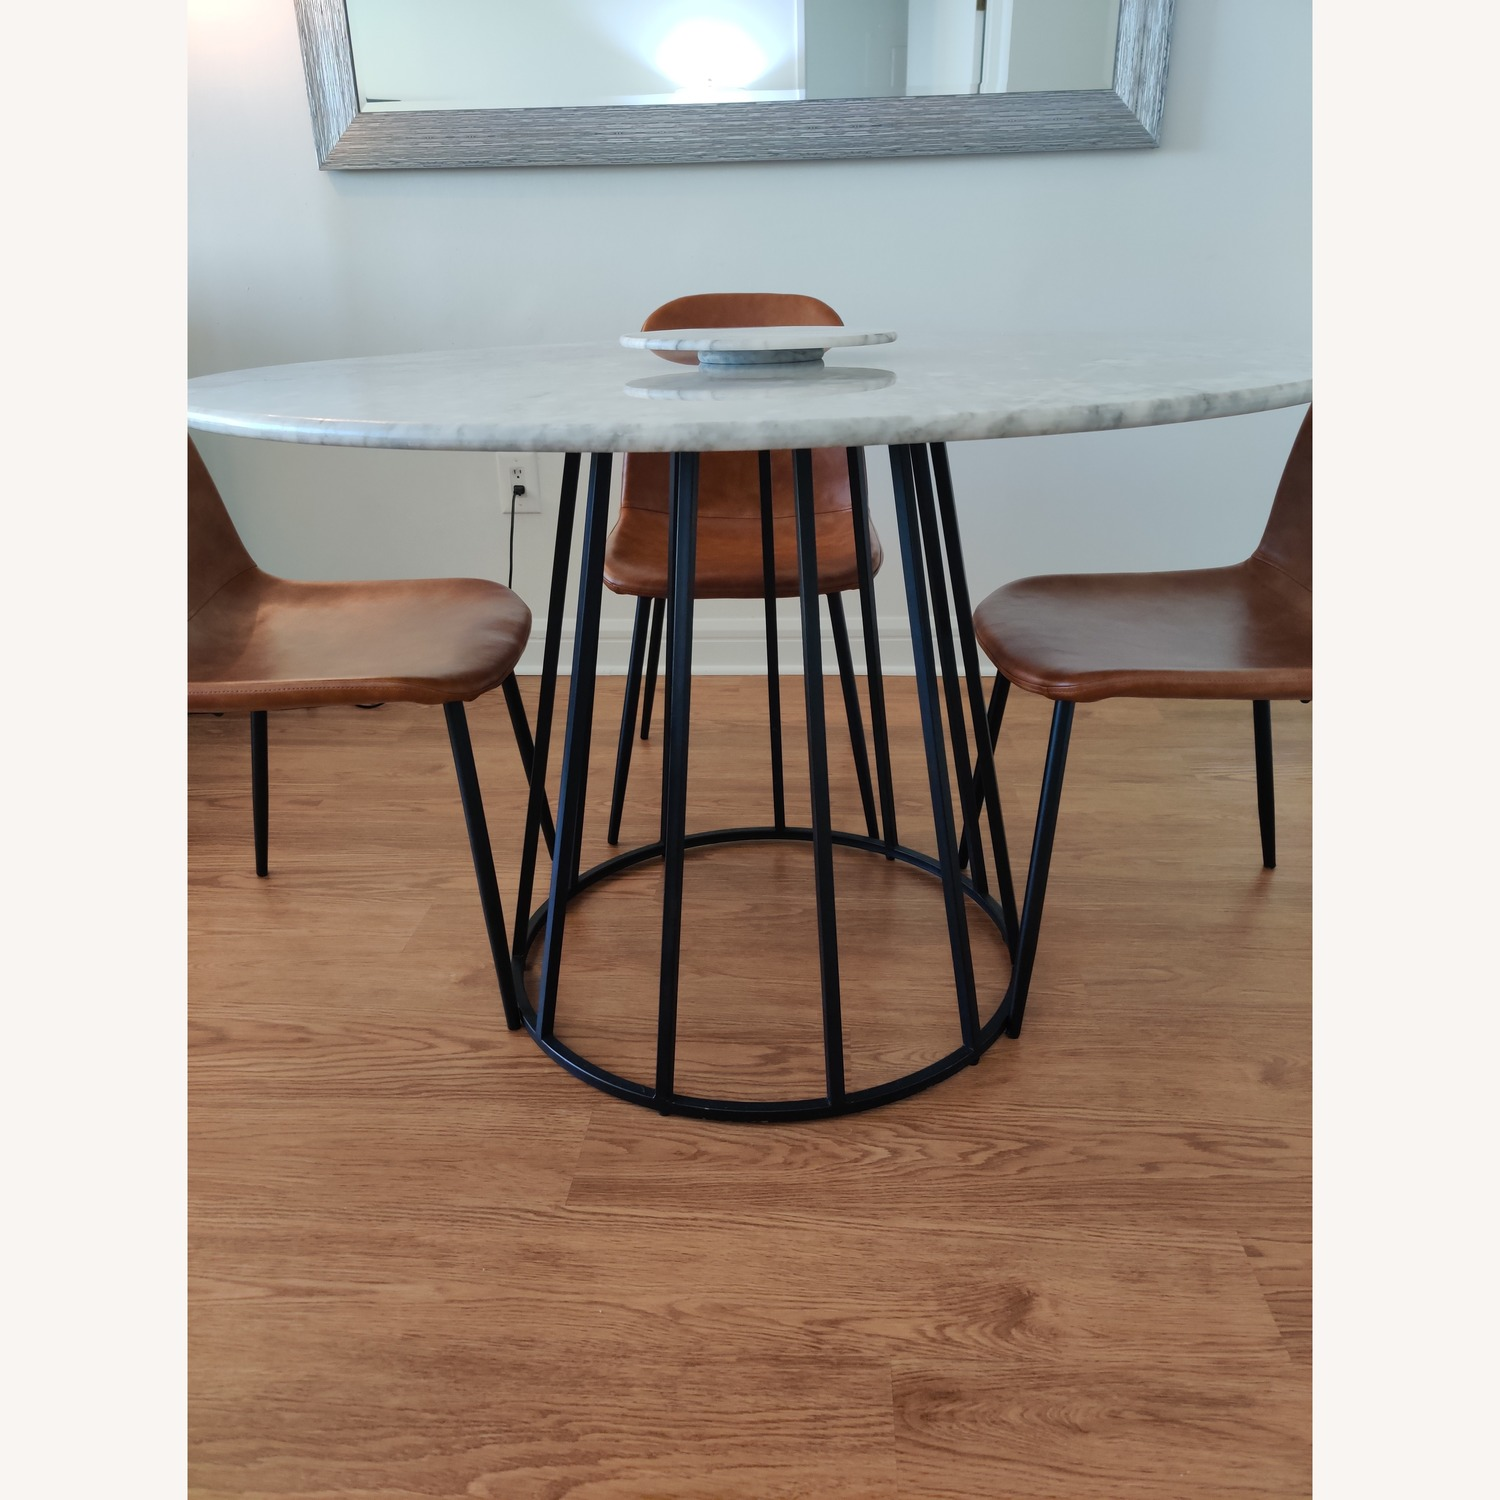 Macy's Round Marble Dining Table w/ 4 Chairs - image-4